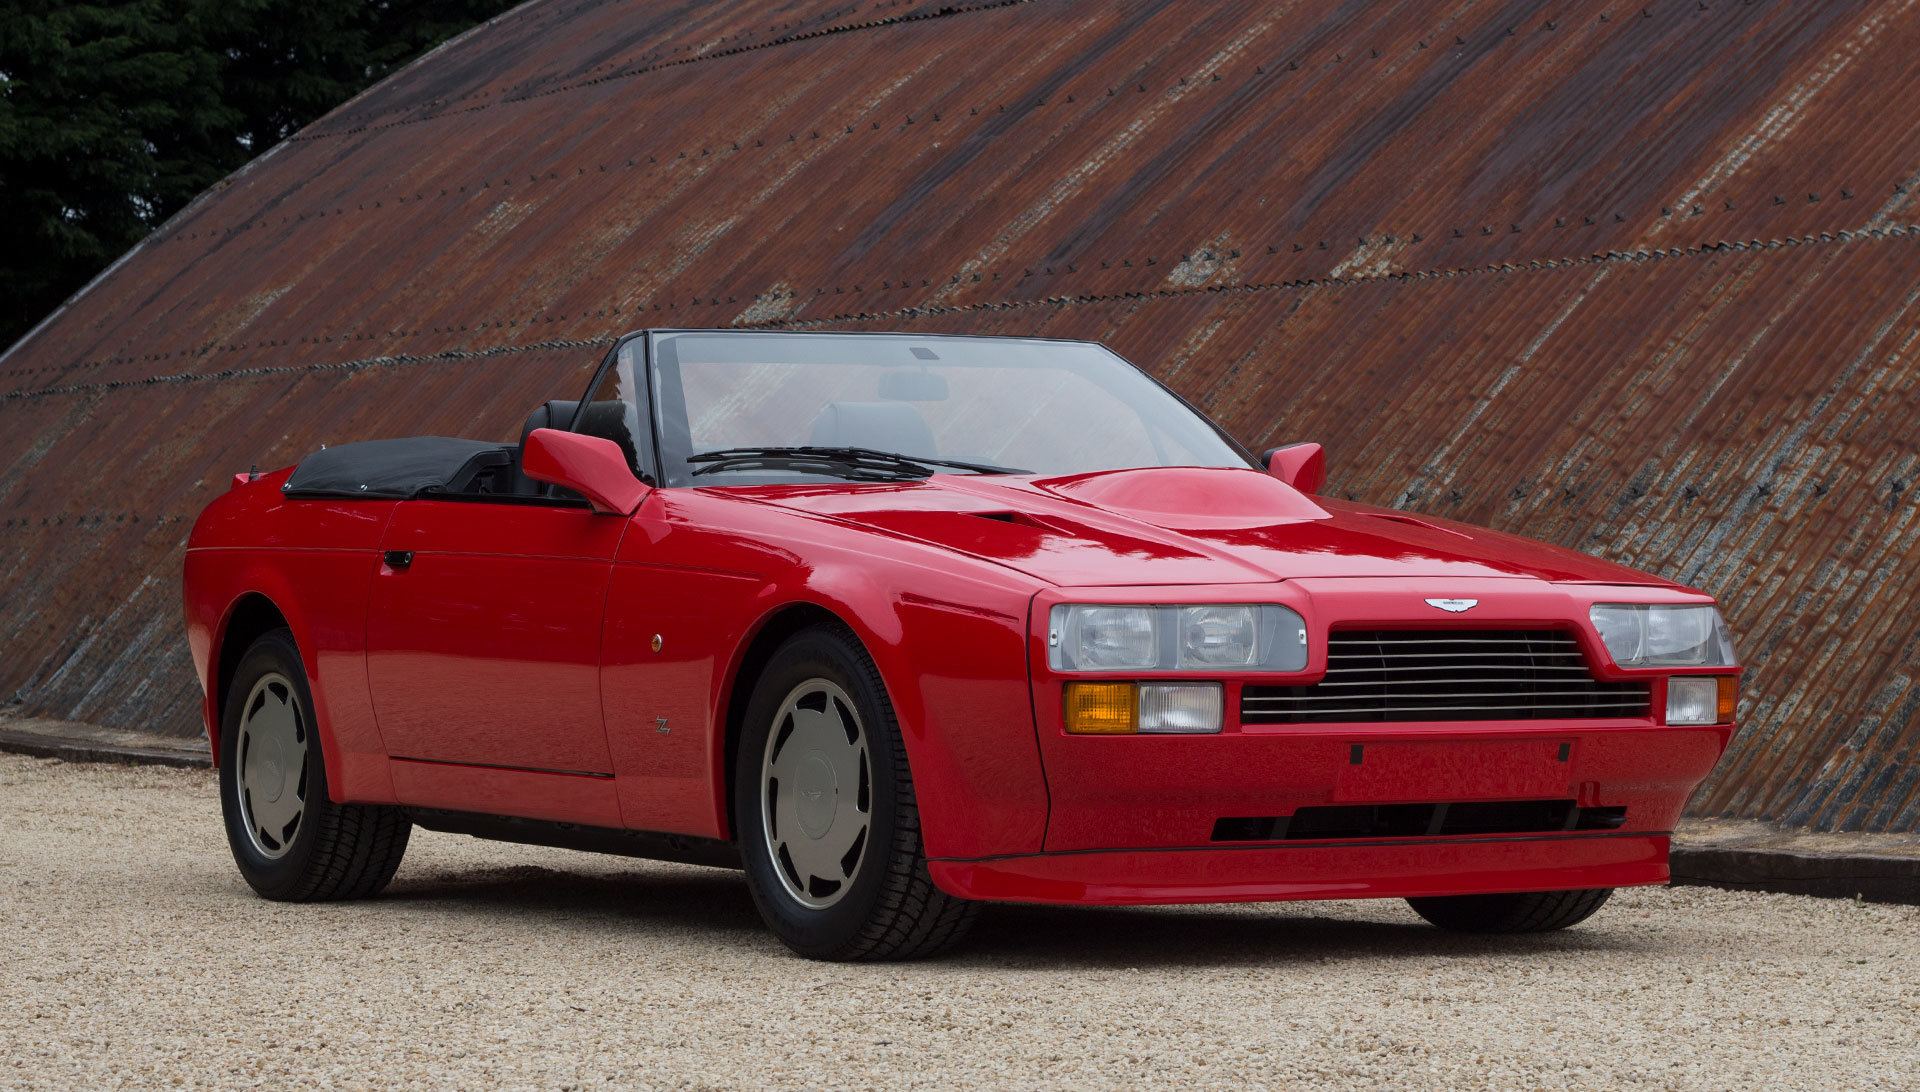 1989 Aston Martin V8 Vantage Volante Zagato - Unregistered For Sale (picture 6 of 24)